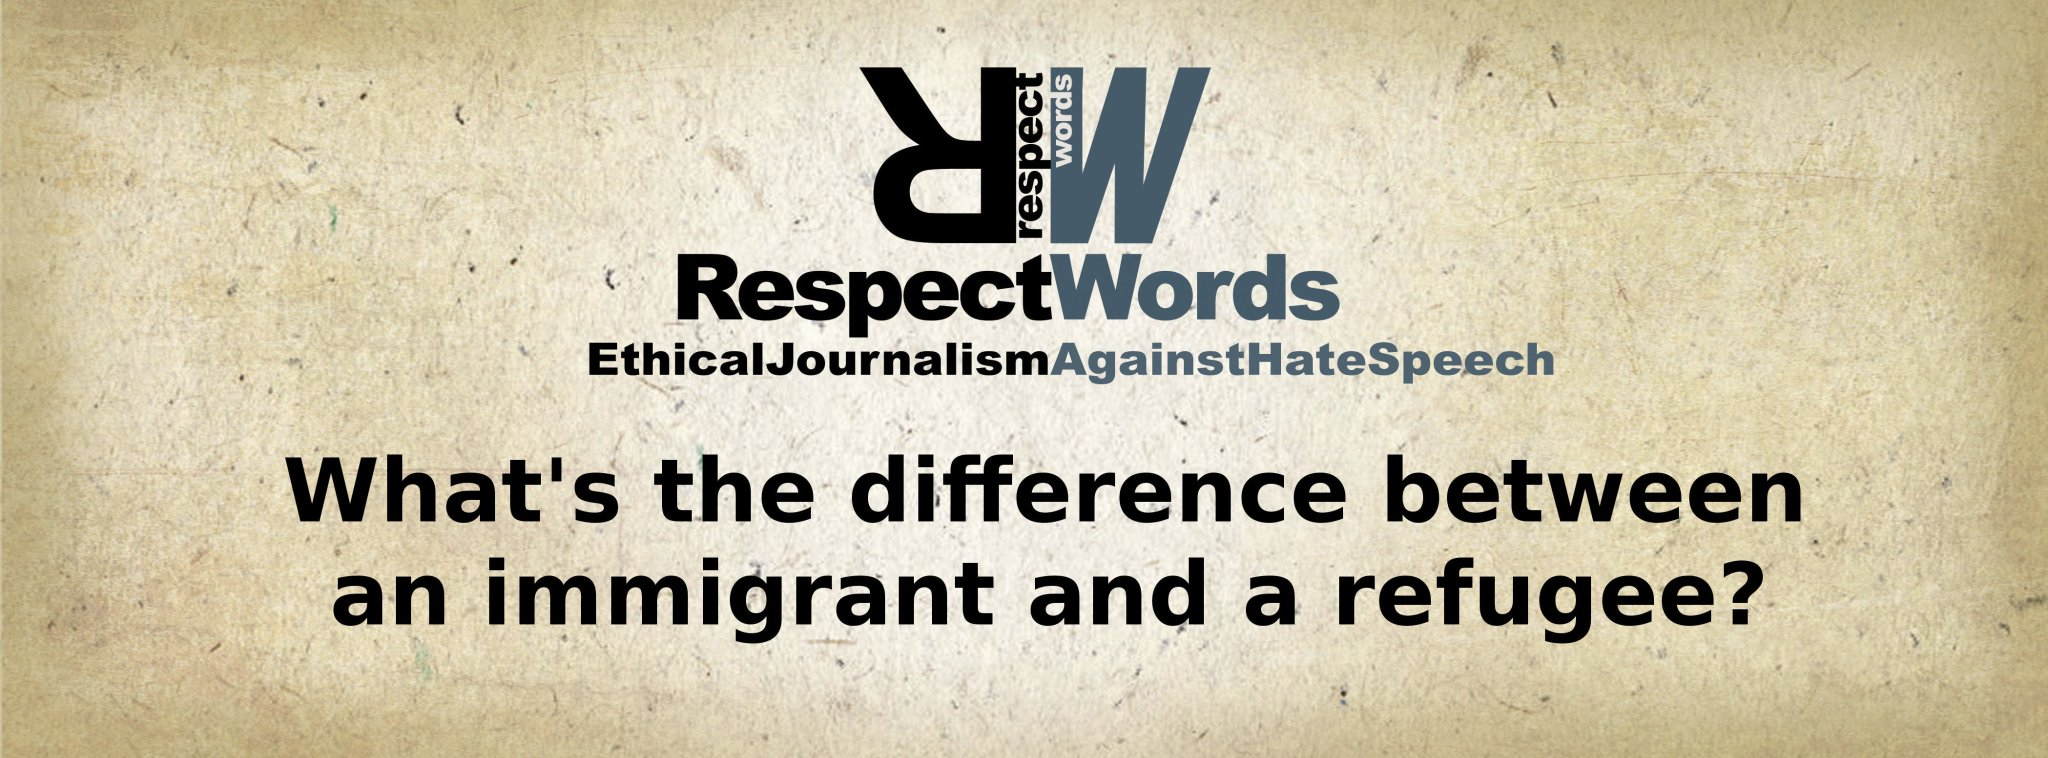 The language is powerful, but we need to know how to use it. #RespectWords #HateSpeech #refugee #immigrant #journalism #news https://t.co/AUR9gDVYY4